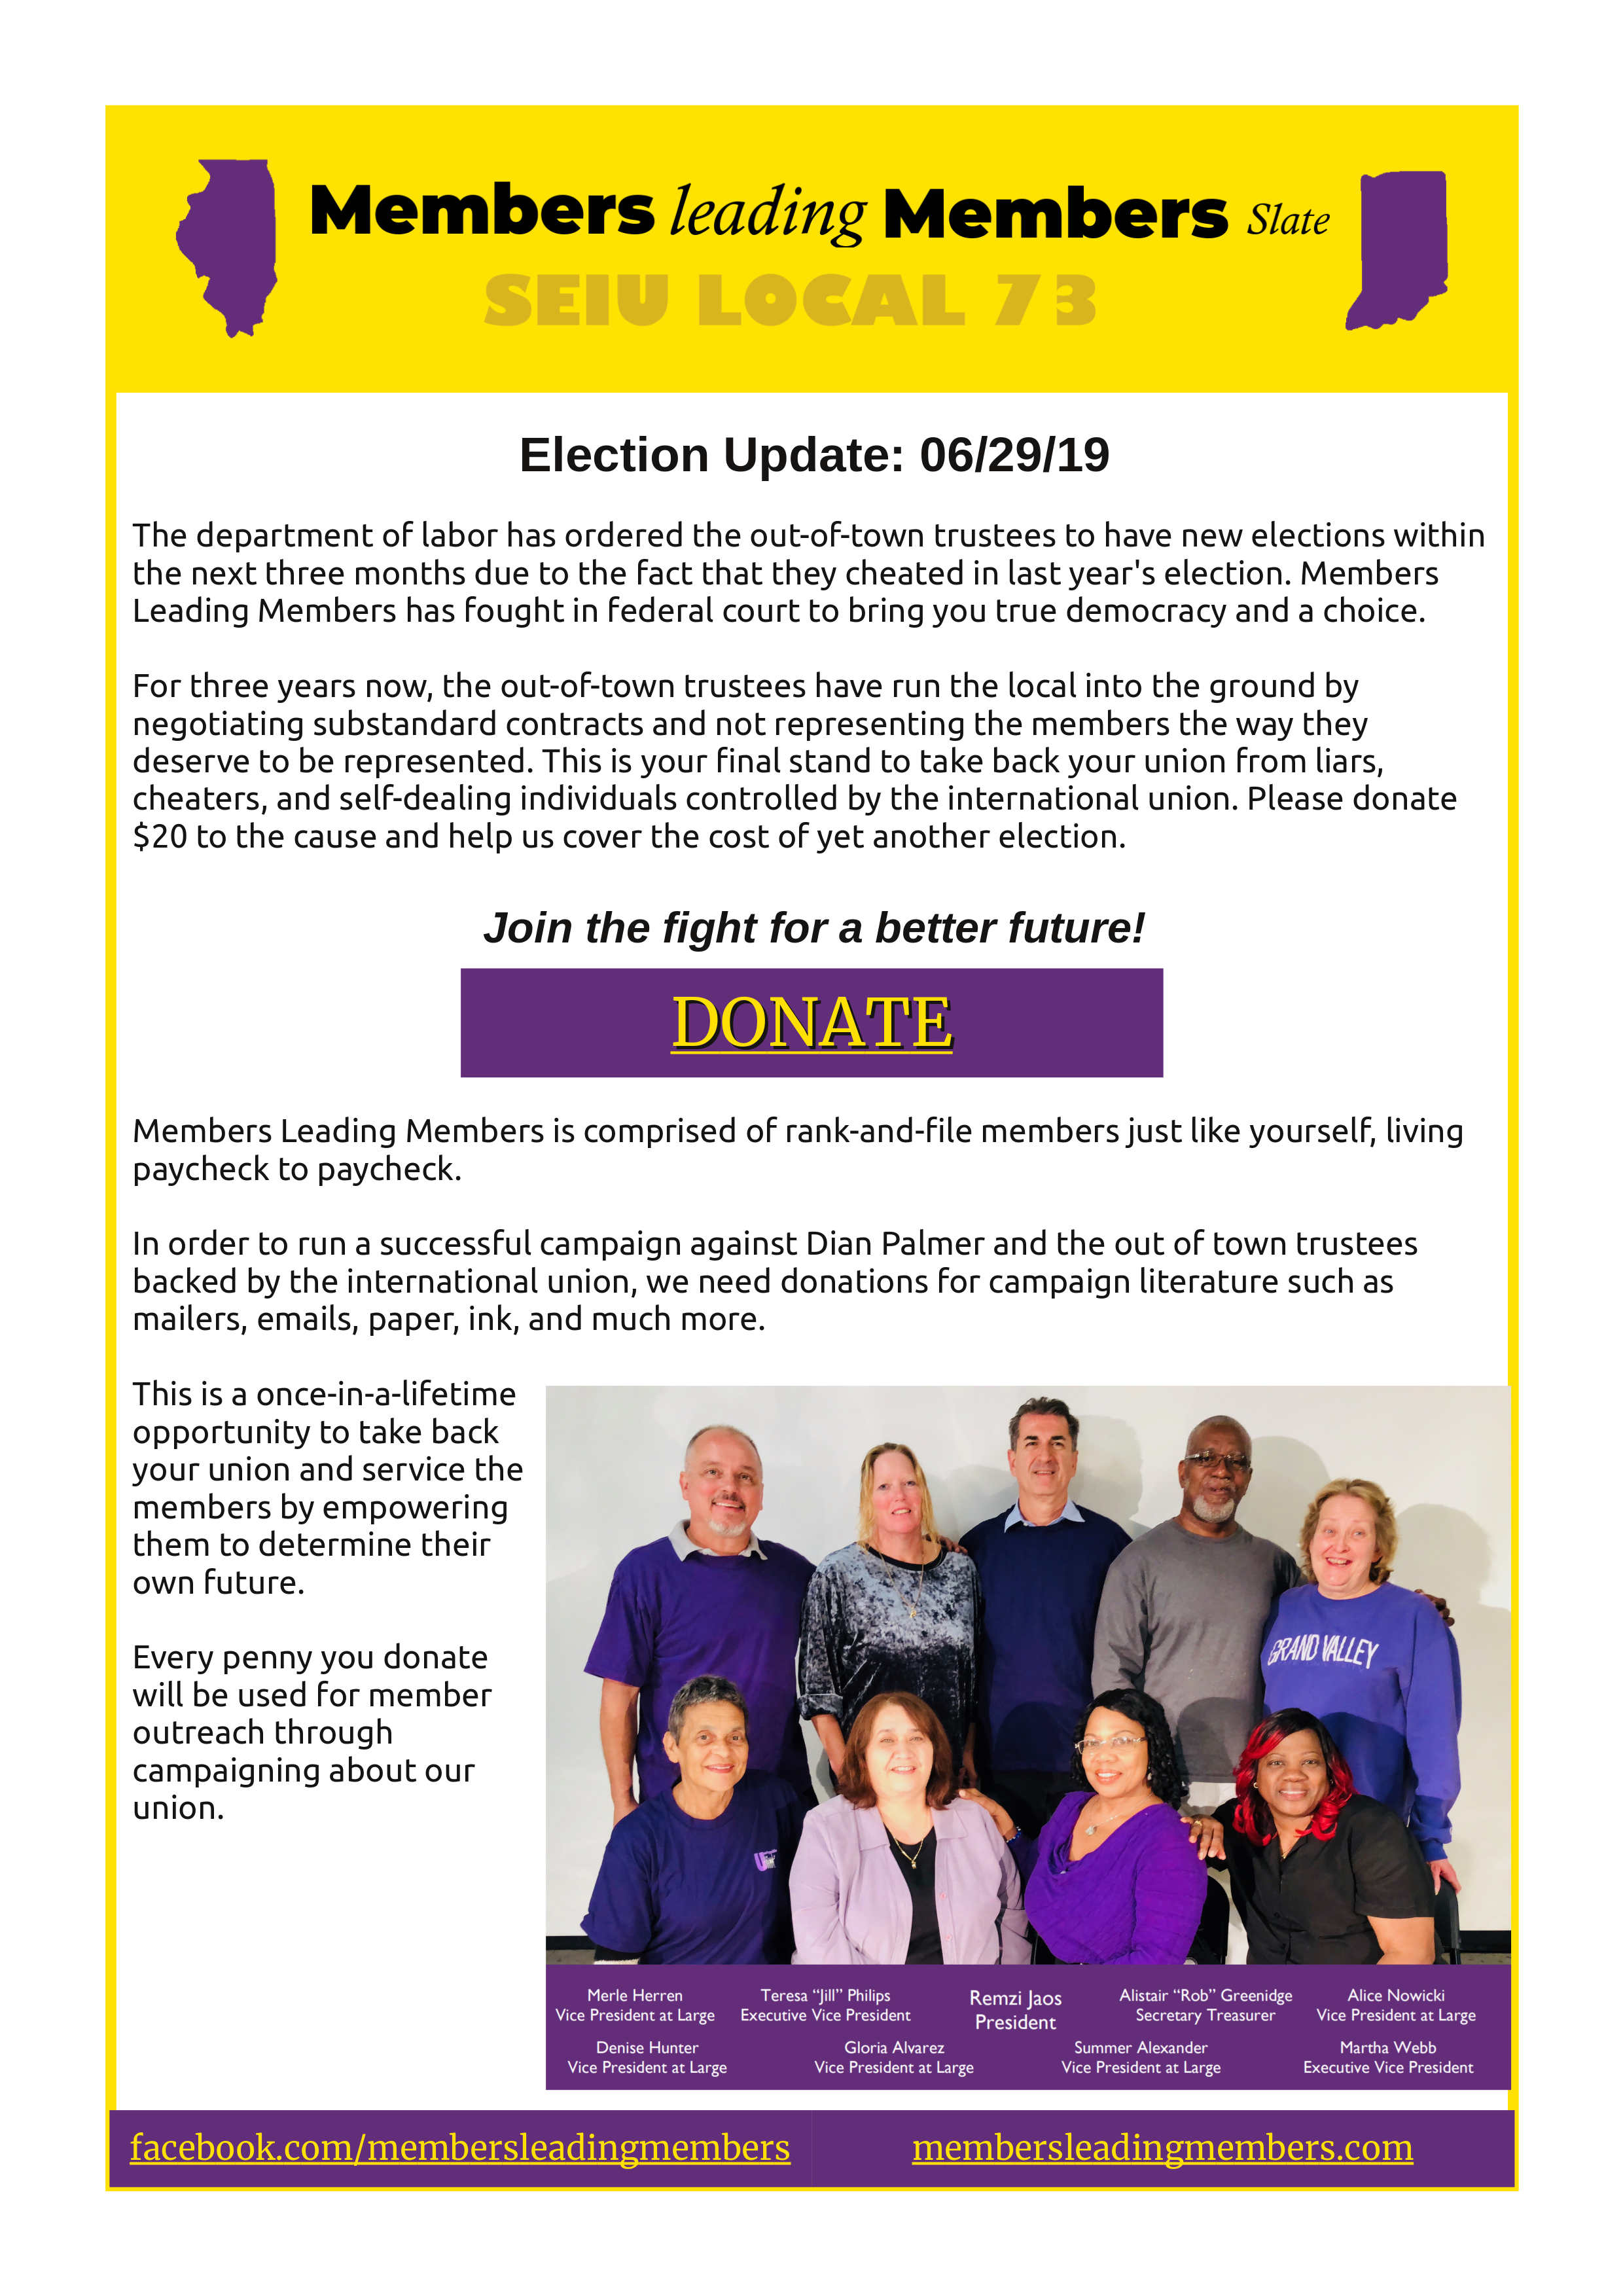 Members Leading Members Donation Flier 06-29-page001.png